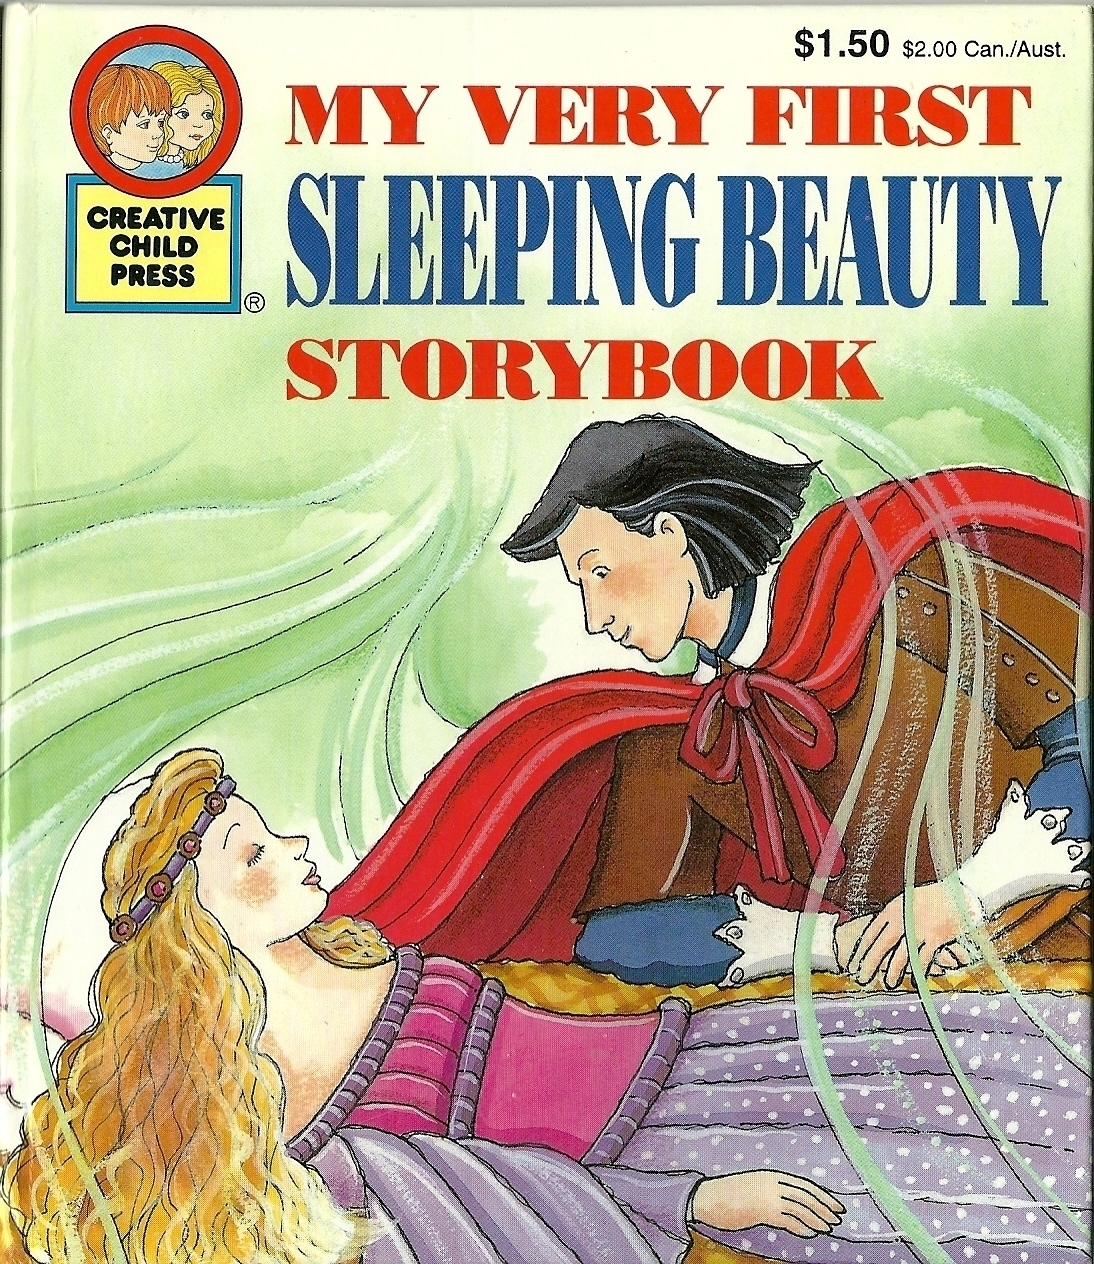 My very first sleeping beauty storybook